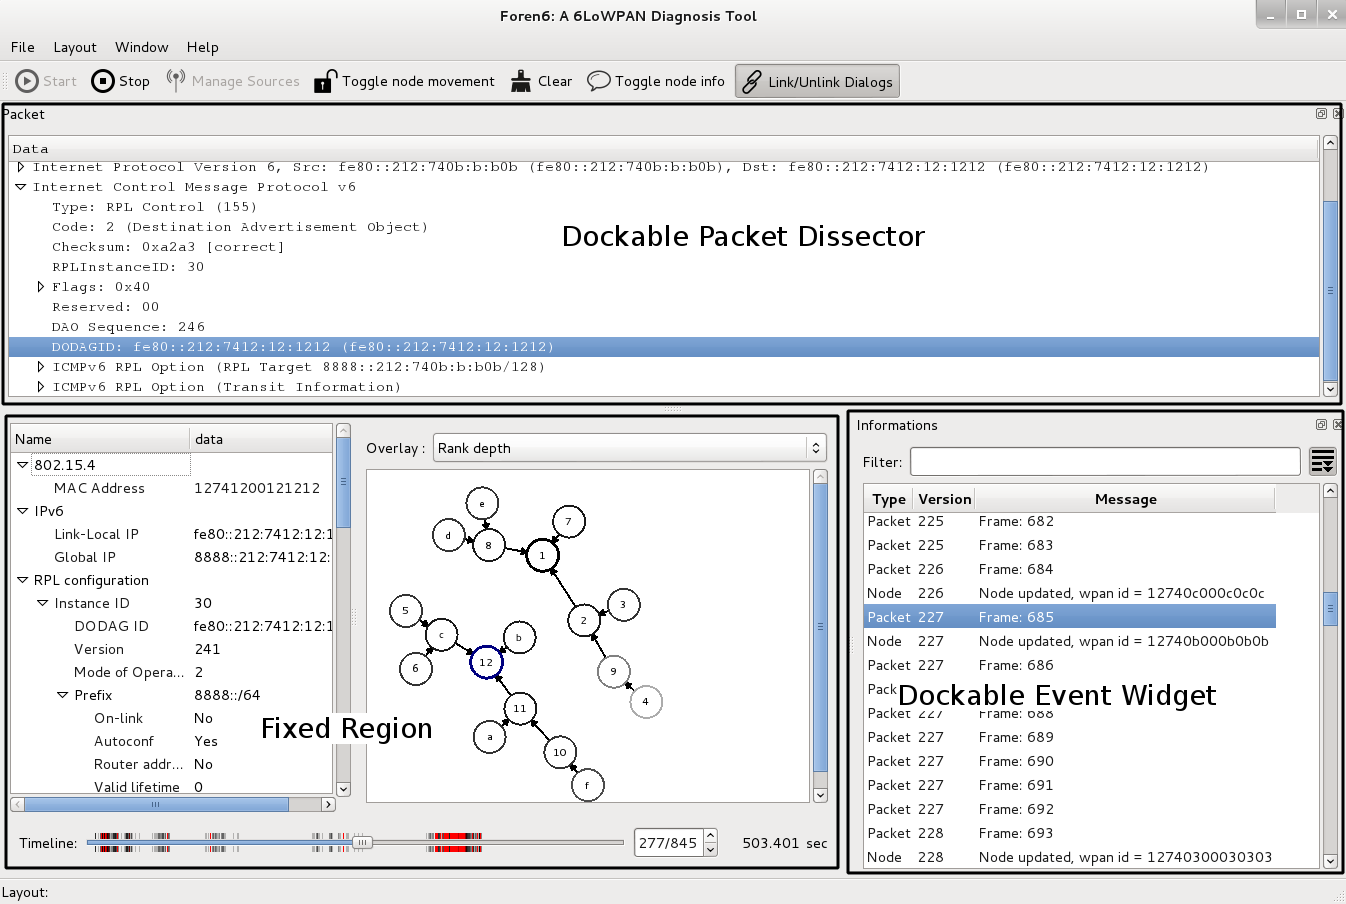 Foren6: A 6LoWPAN Diagnosis Tool